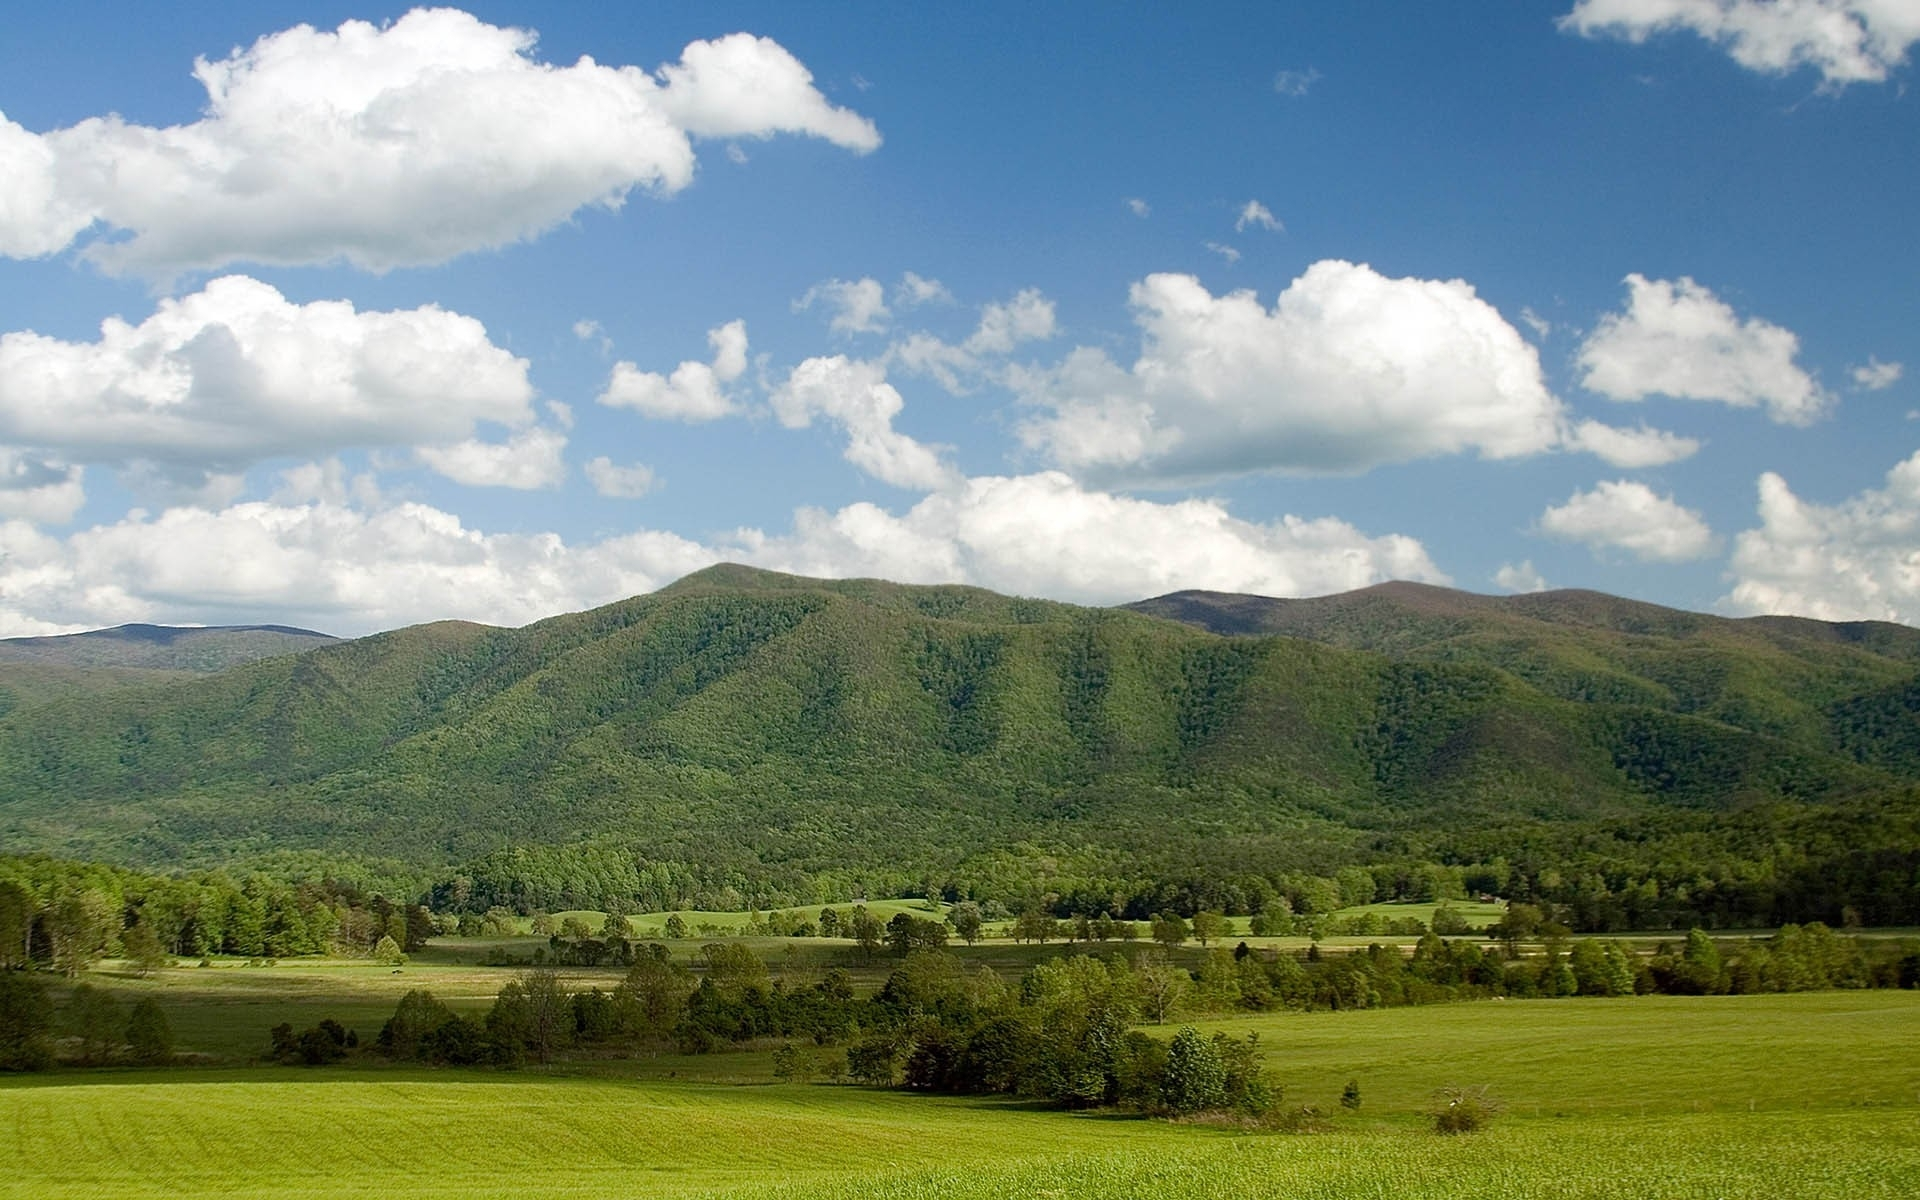 Hilly Mountains Trees & Sky wallpapers | Hilly Mountains ...